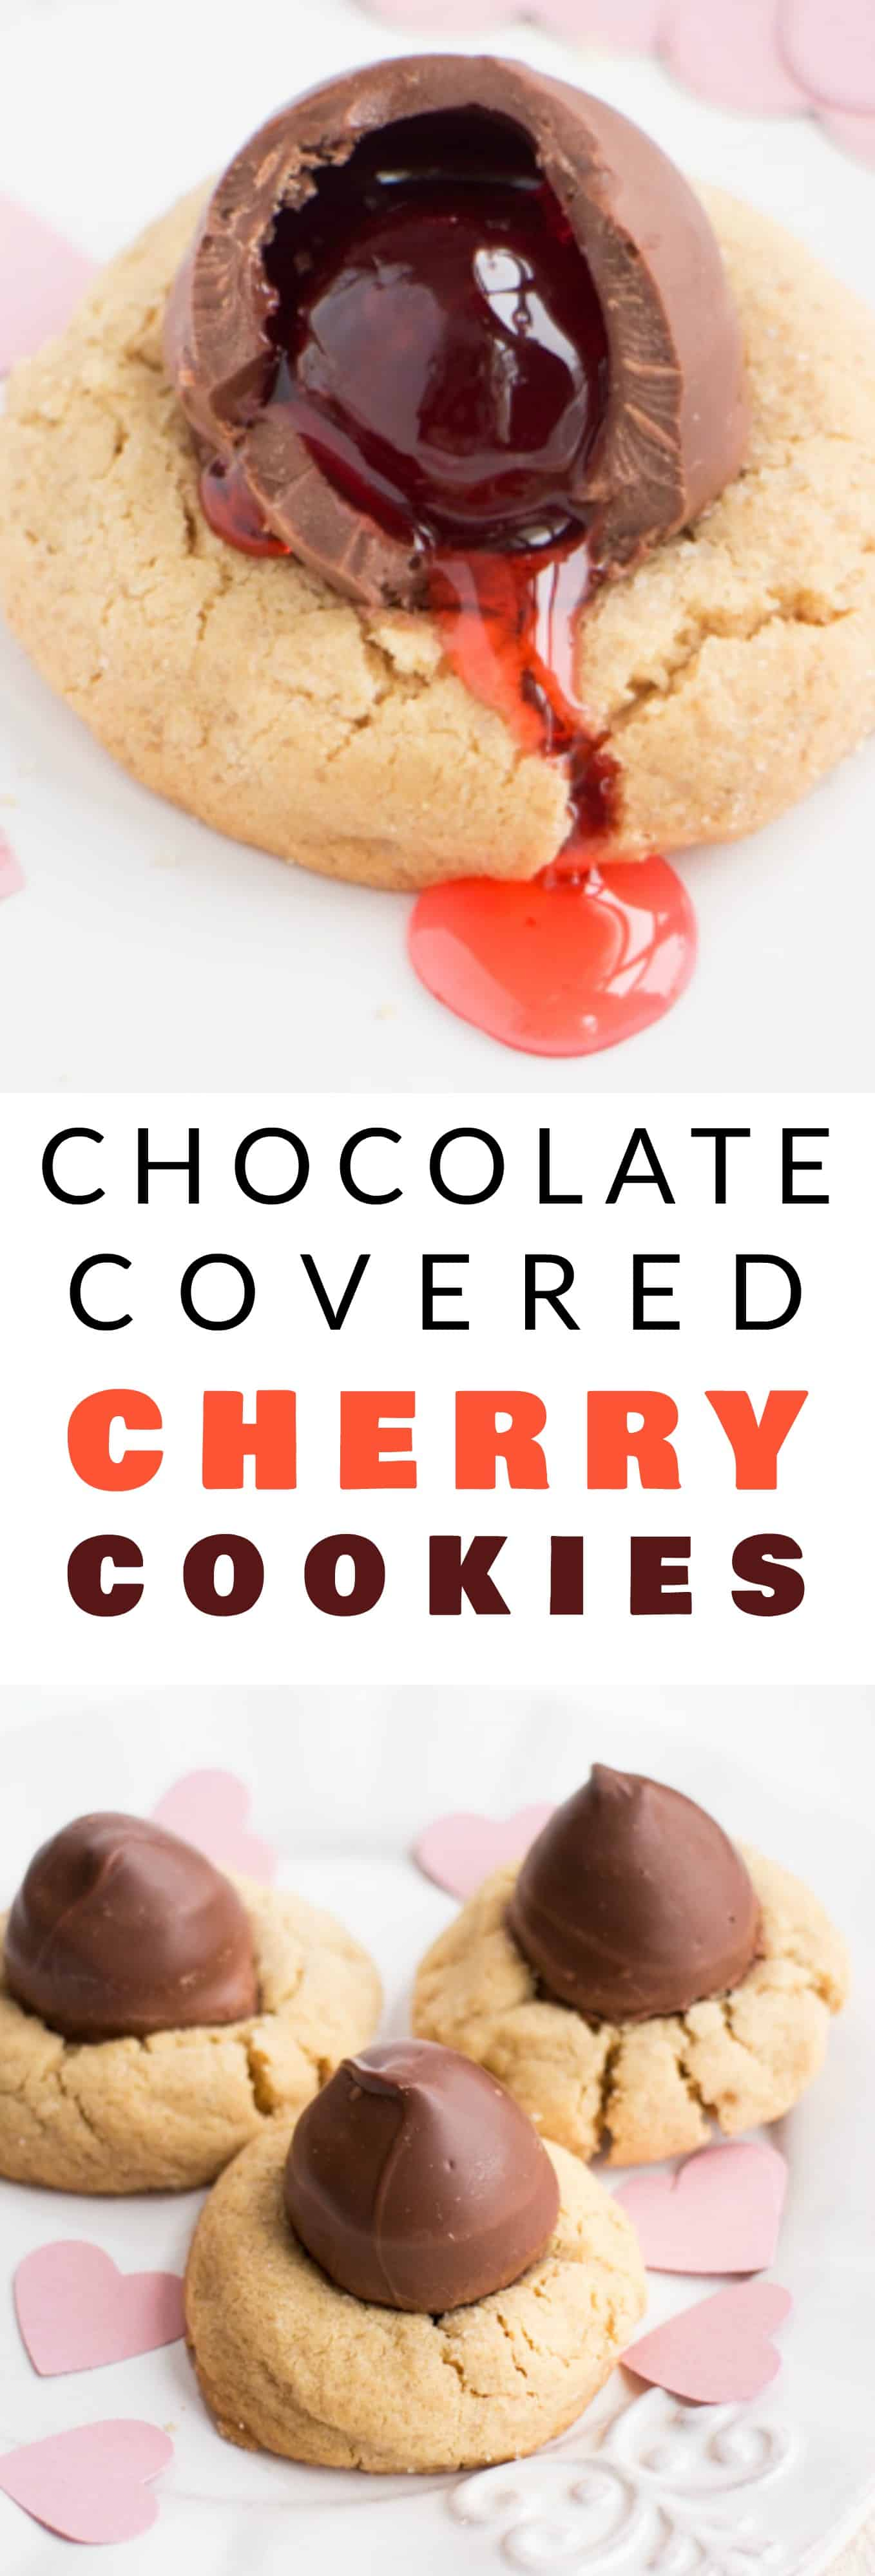 CHOCOLATE covered CHERRY cookies! Easy recipe for Peanut Butter Blossom Cookies with a chocolate covered cherry in the middle of each one! The cookies are so soft and chewy, that kids and adults will consider them the best! These are great cookies for Valentines Day, Christmas and parties!